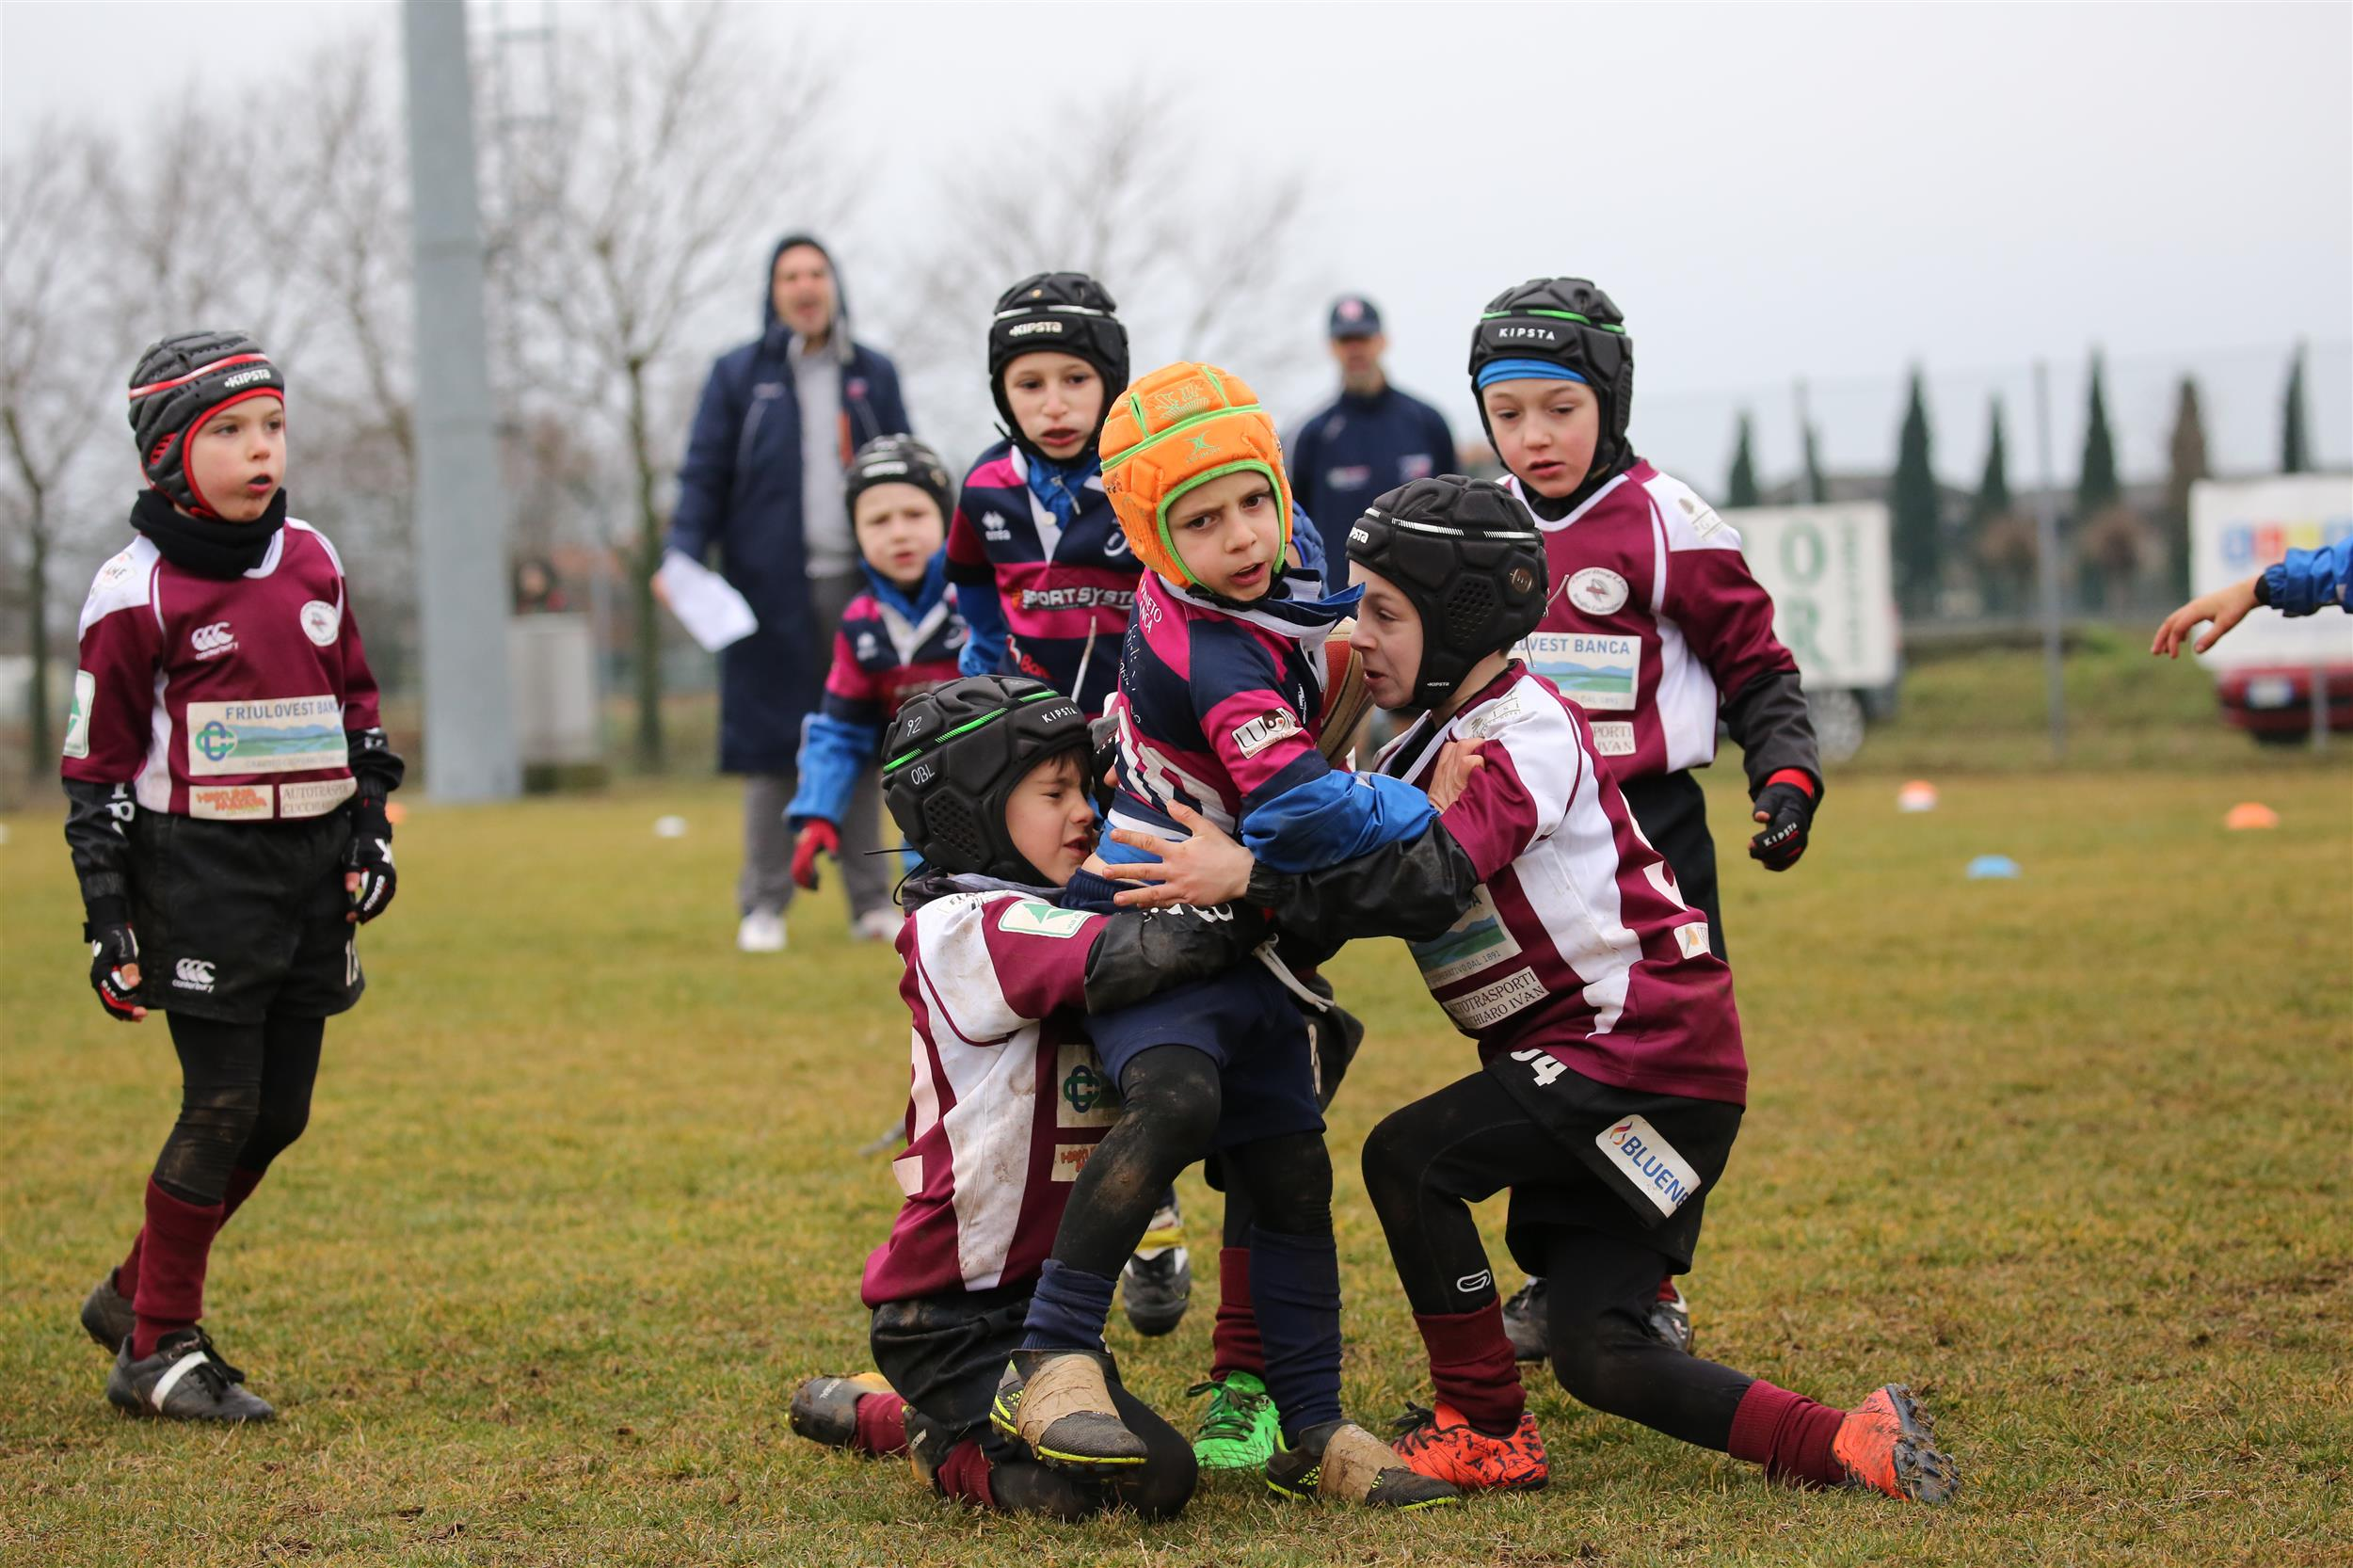 http://rugbyvittorioveneto.it/wp-content/uploads/2018/08/8W7A0471.jpg